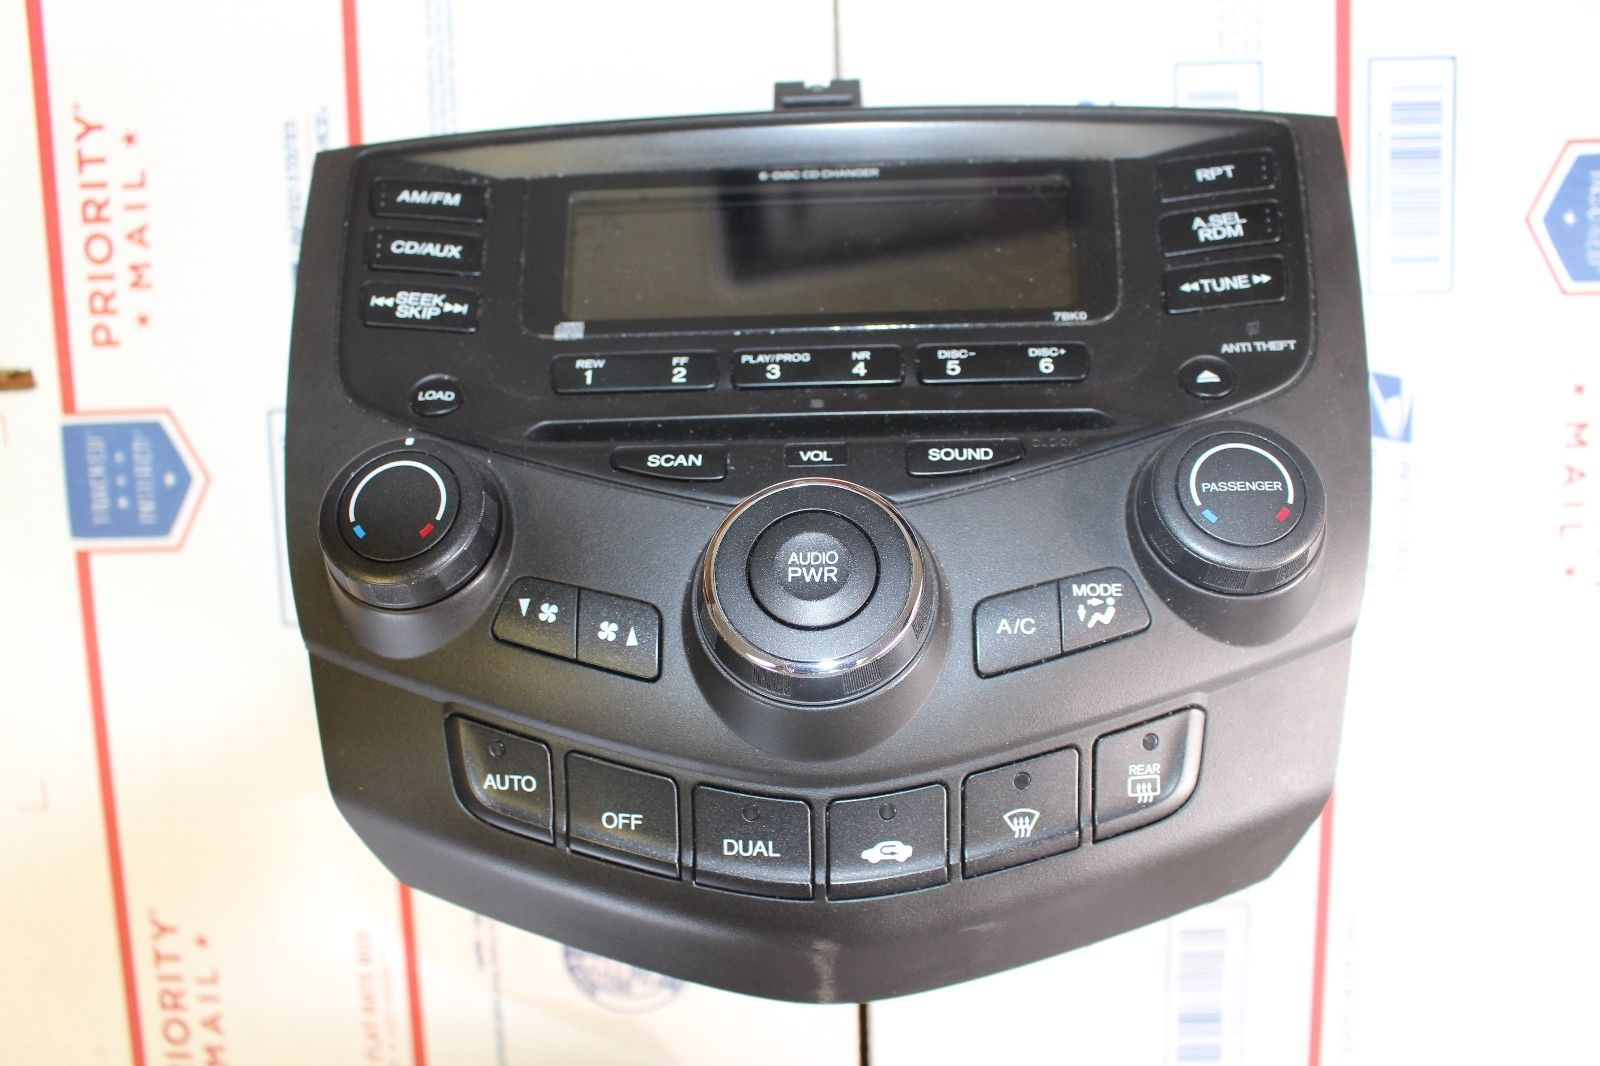 Honda Accord 03-07 6 CD Player Changer Radio,Climate Control, Factory OEM W/Code